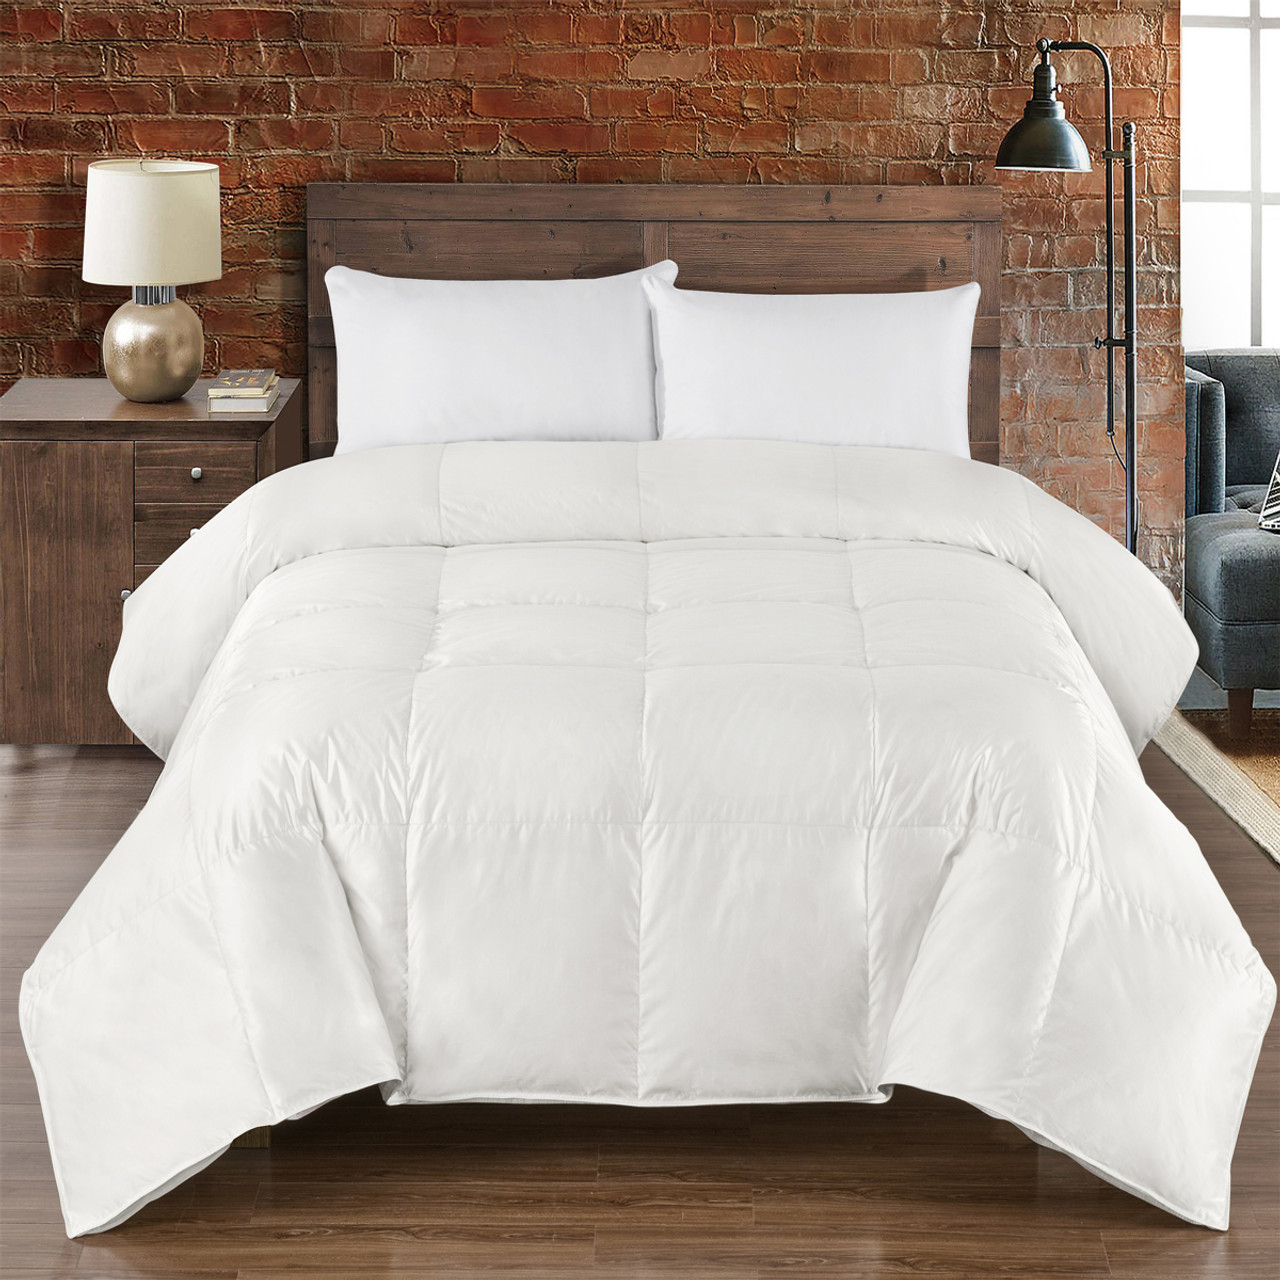 Luxury Goose Down Comforters Queen Size By Royal Hotel